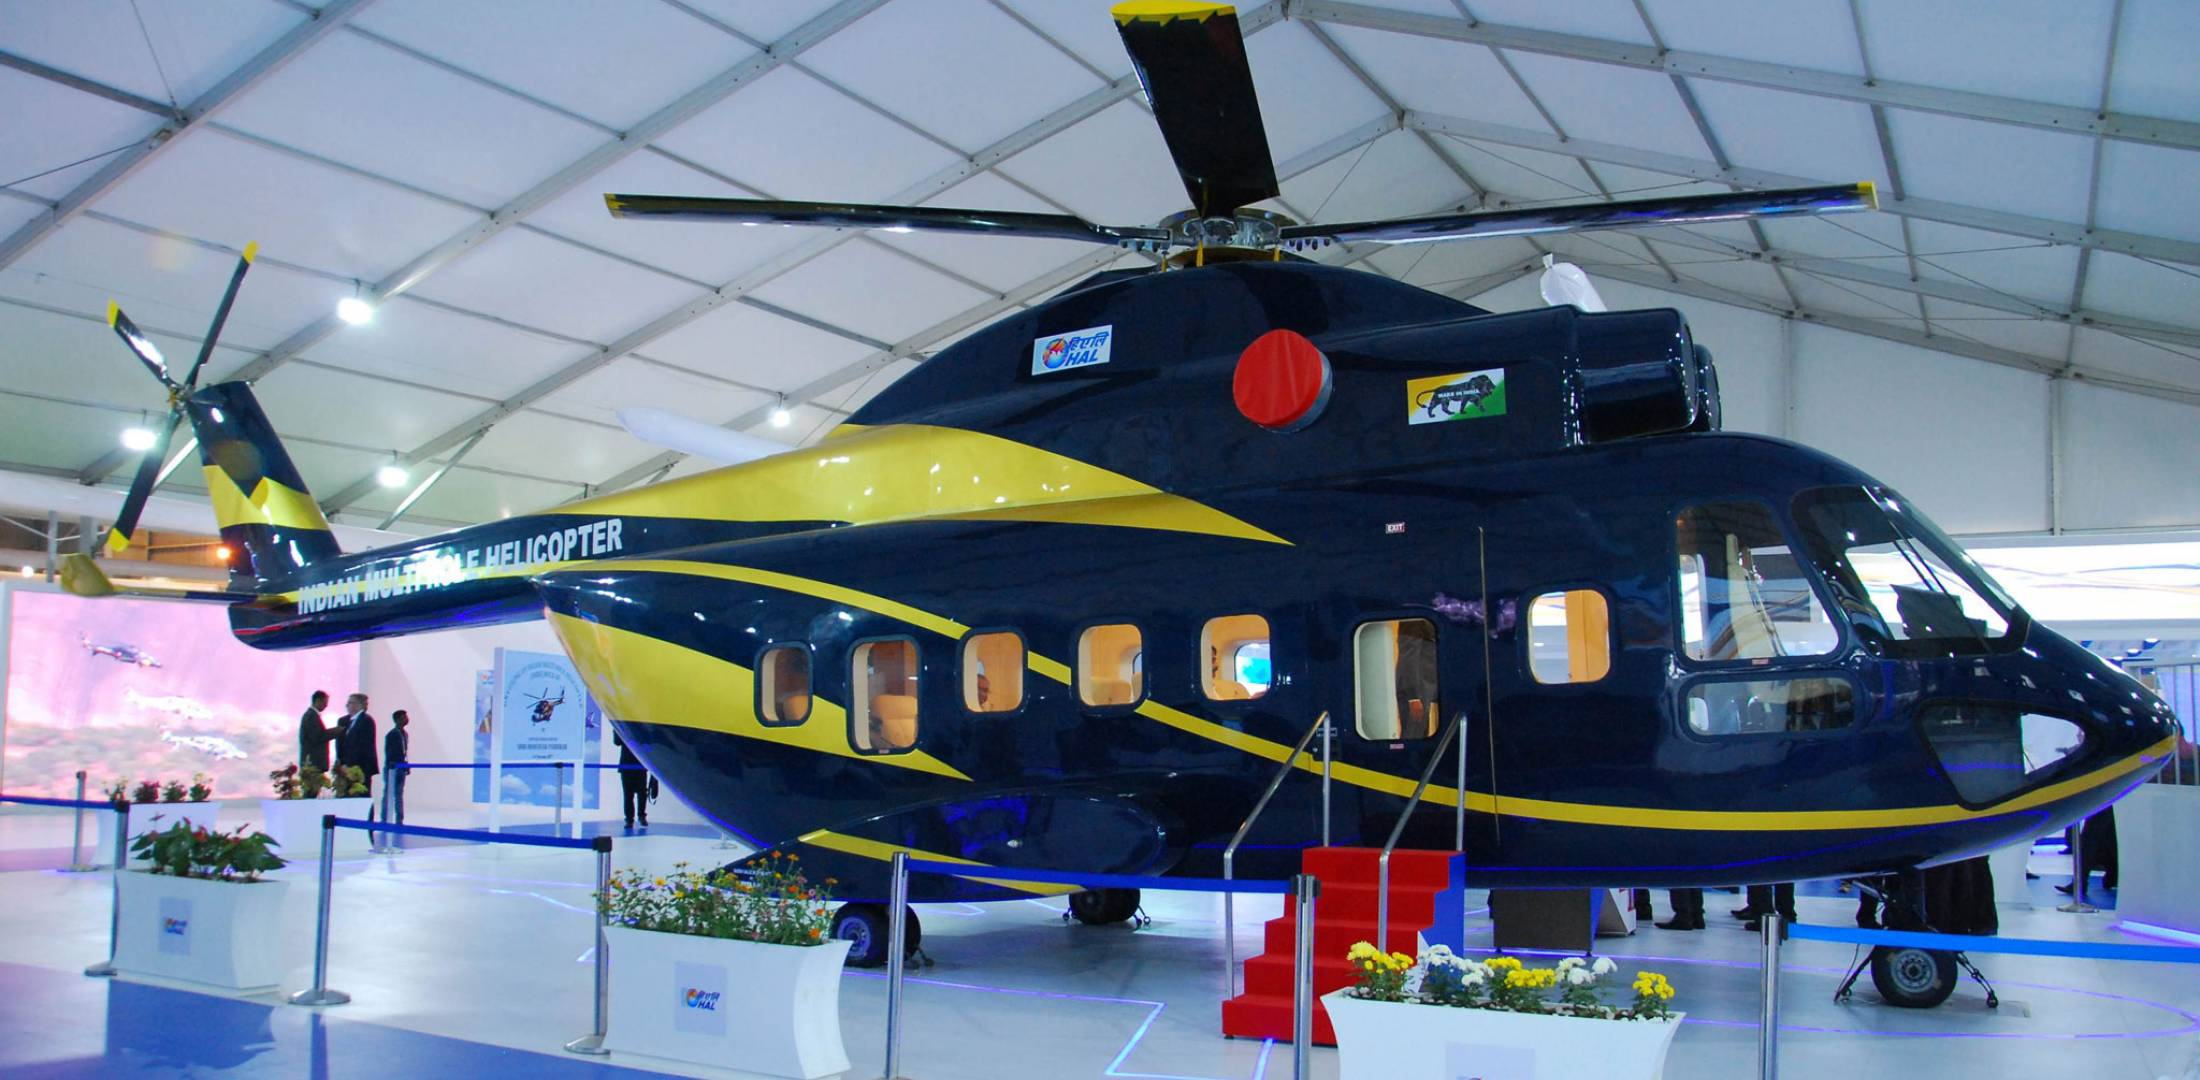 Indian multirole helicopter on display